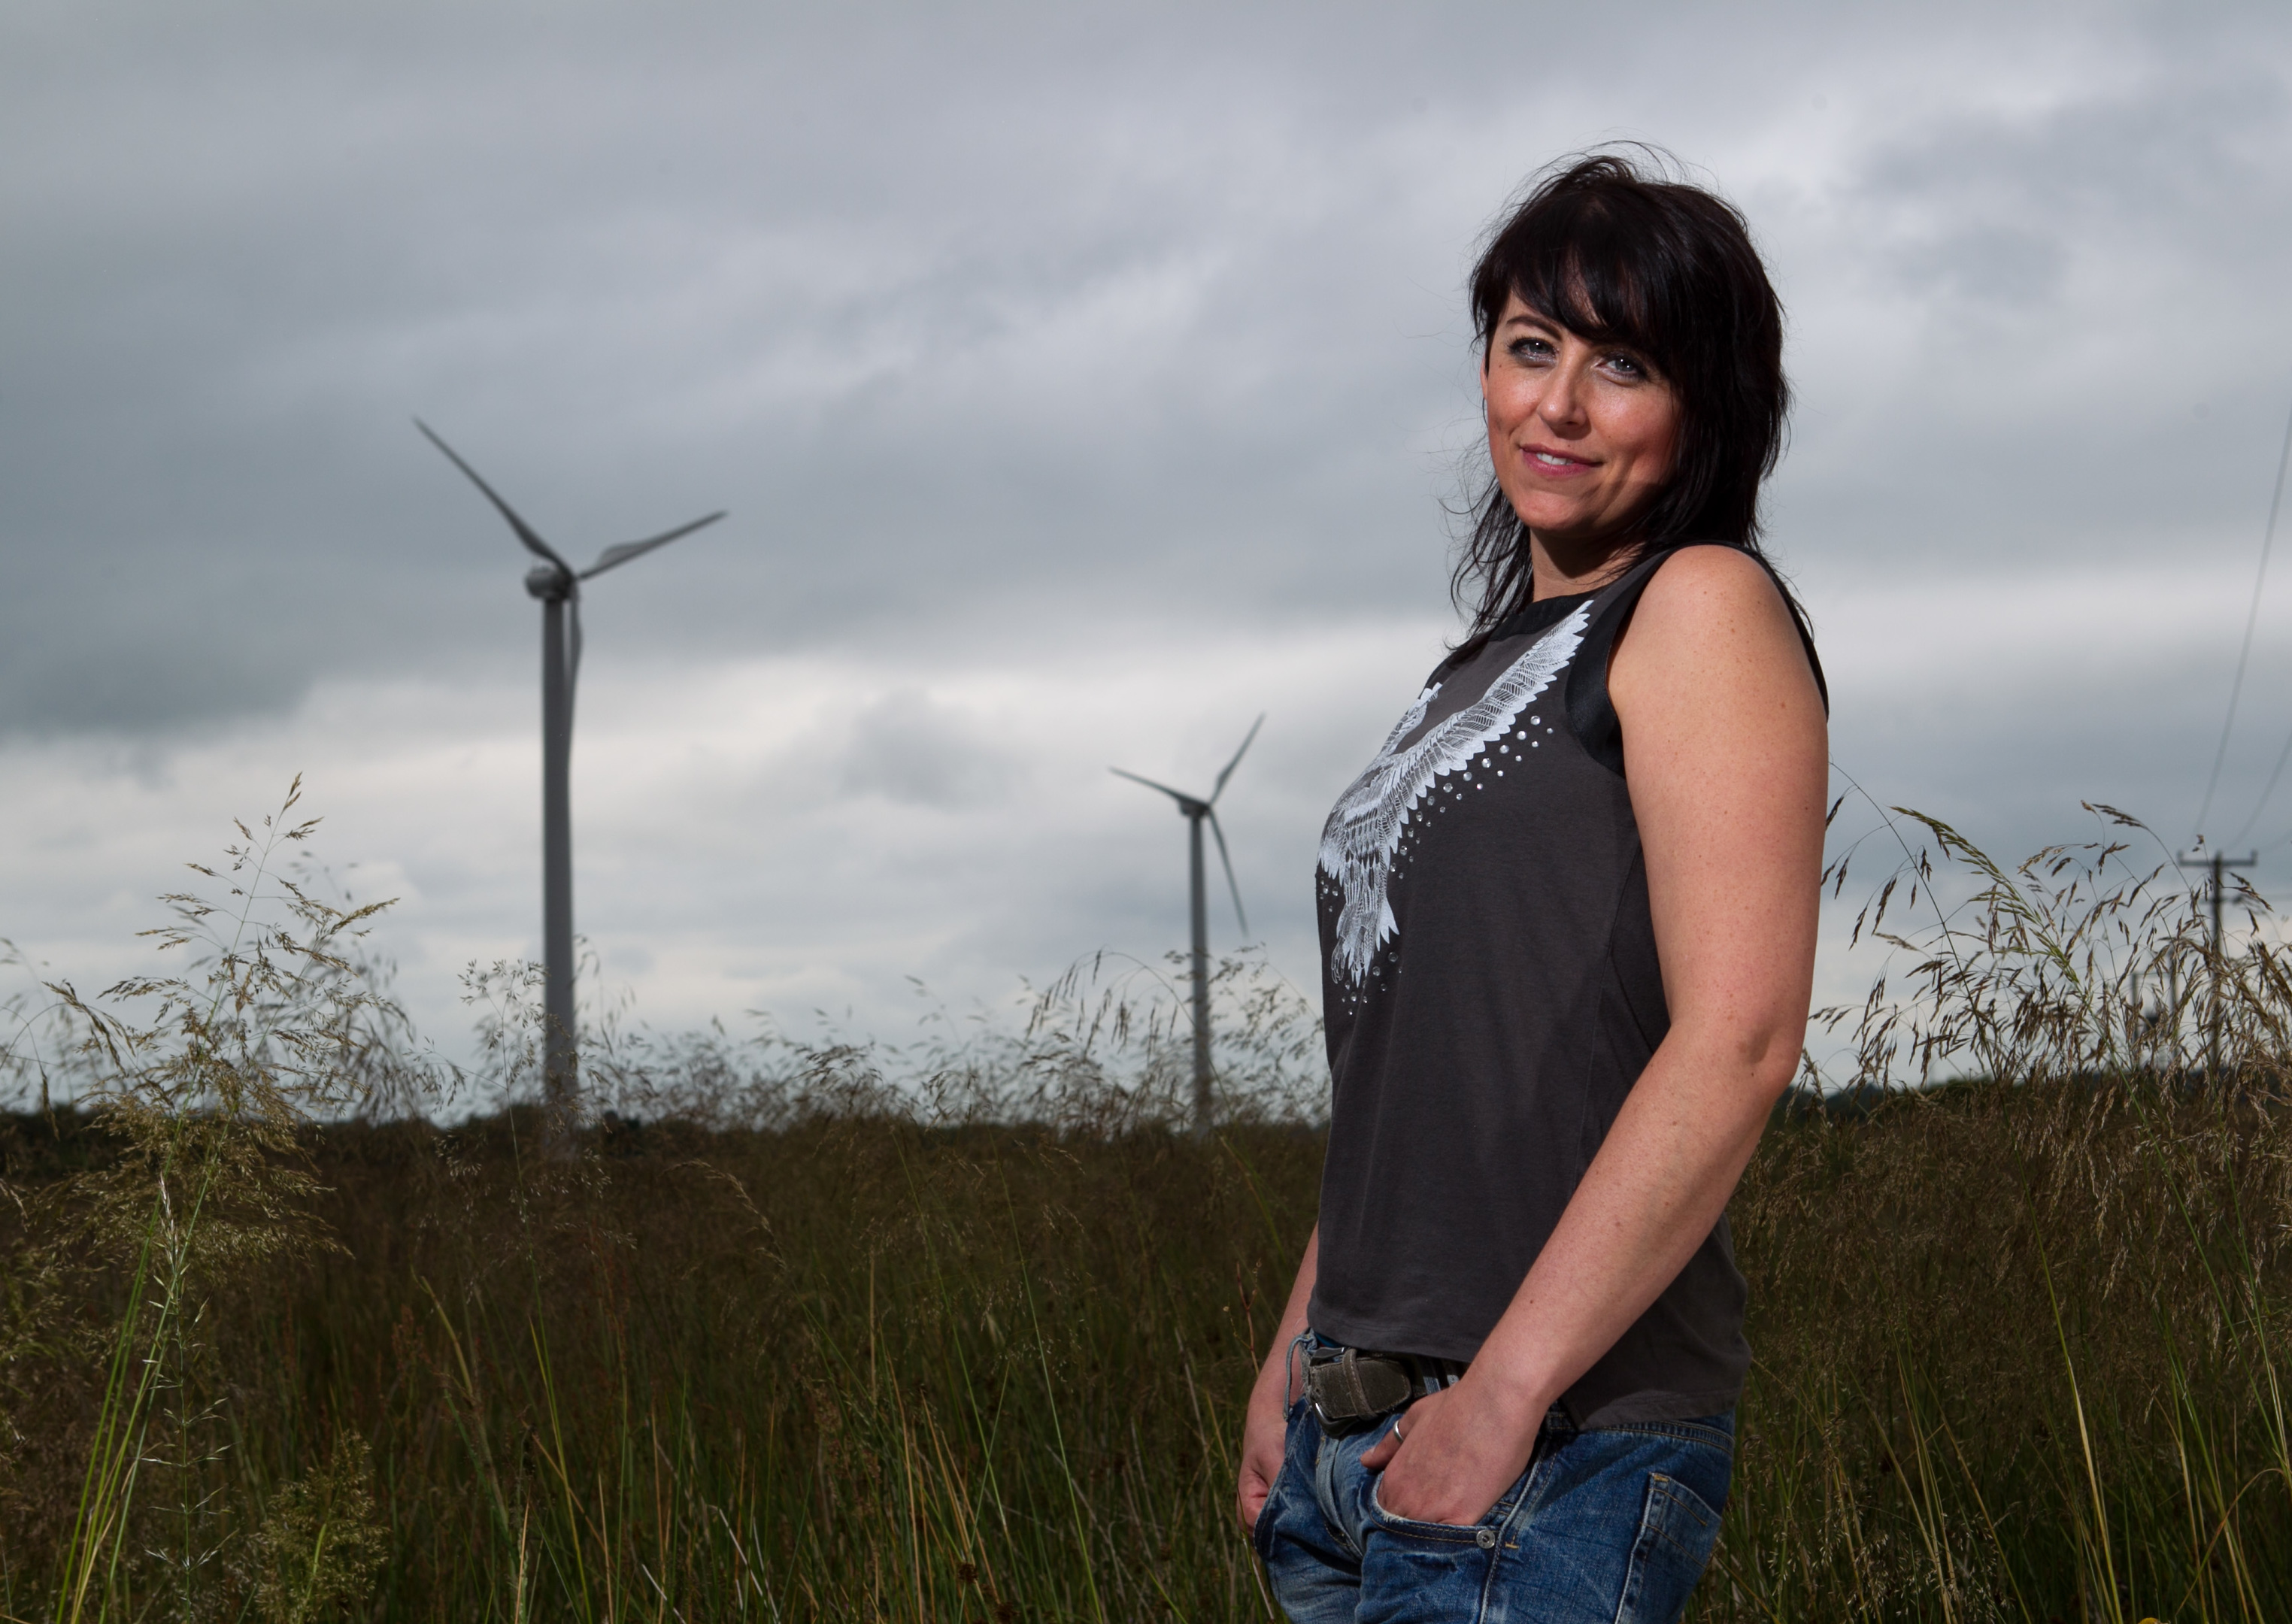 Alison Prior, who had a fear of wind turbines (Andrew Cawley / DC Thomson)